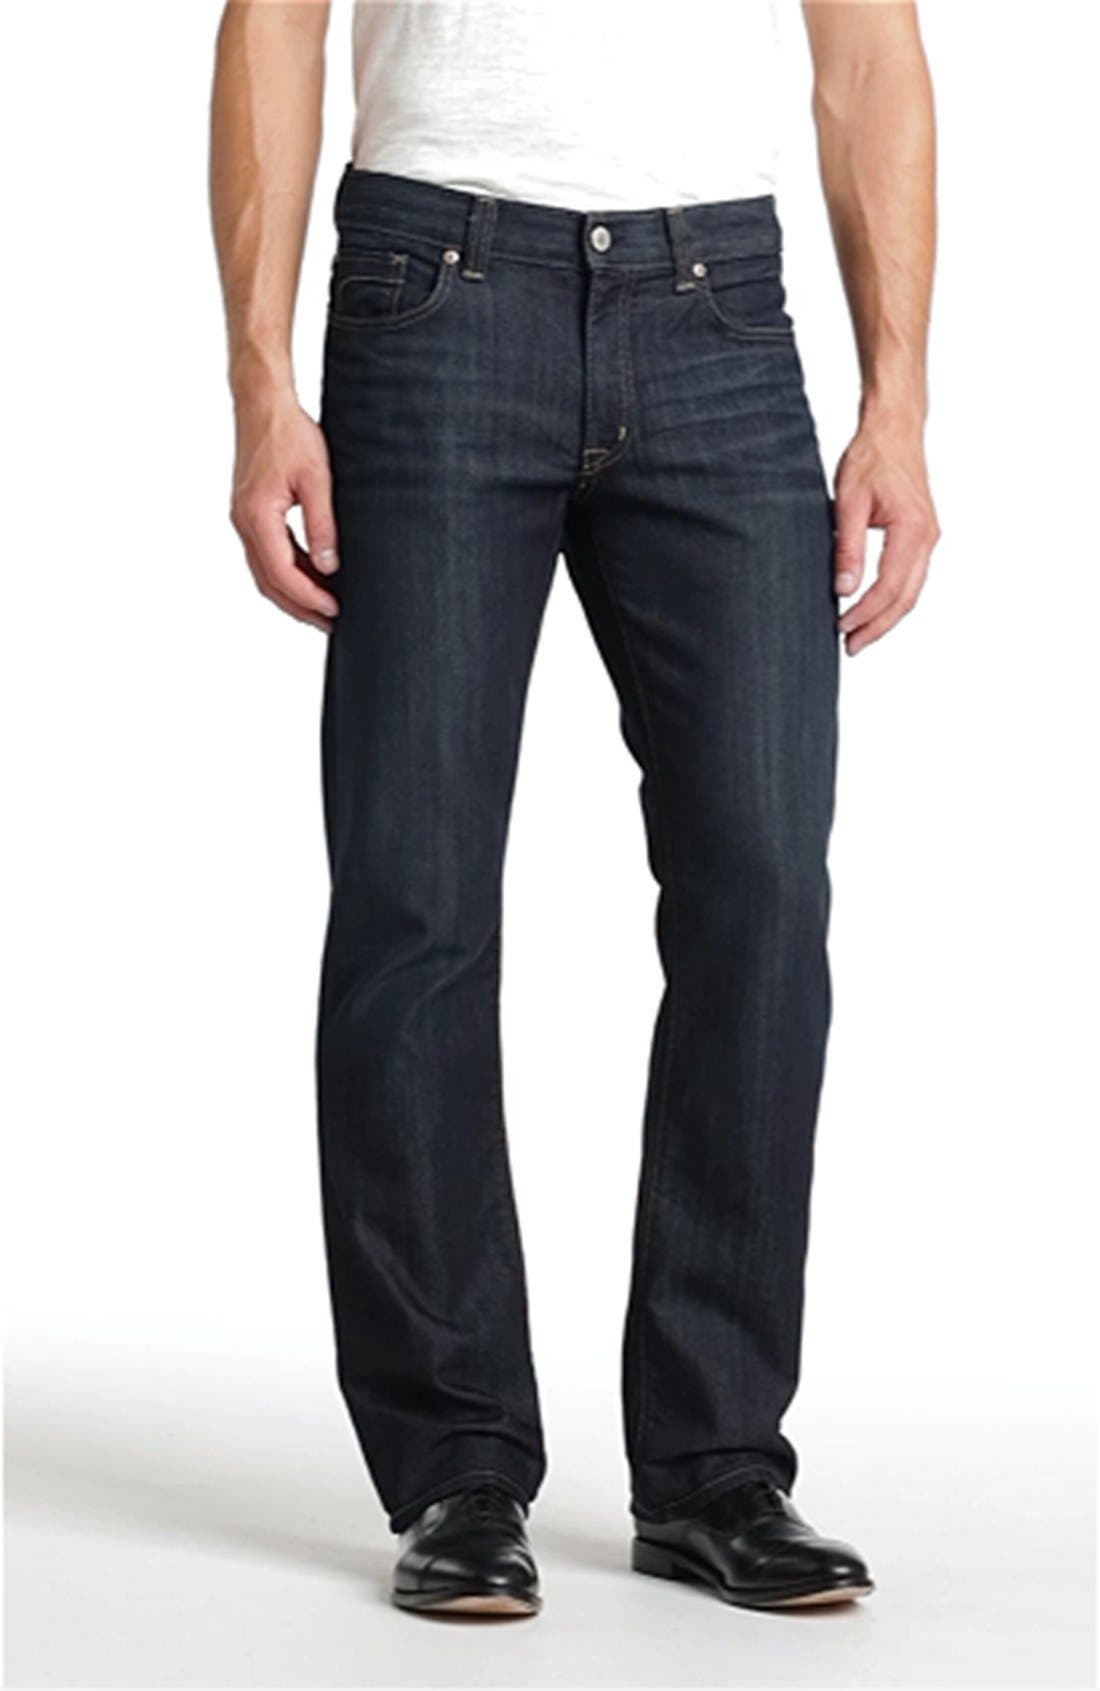 50-11 Relaxed Fit Jeans,                             Alternate thumbnail 6, color,                             CALVARY